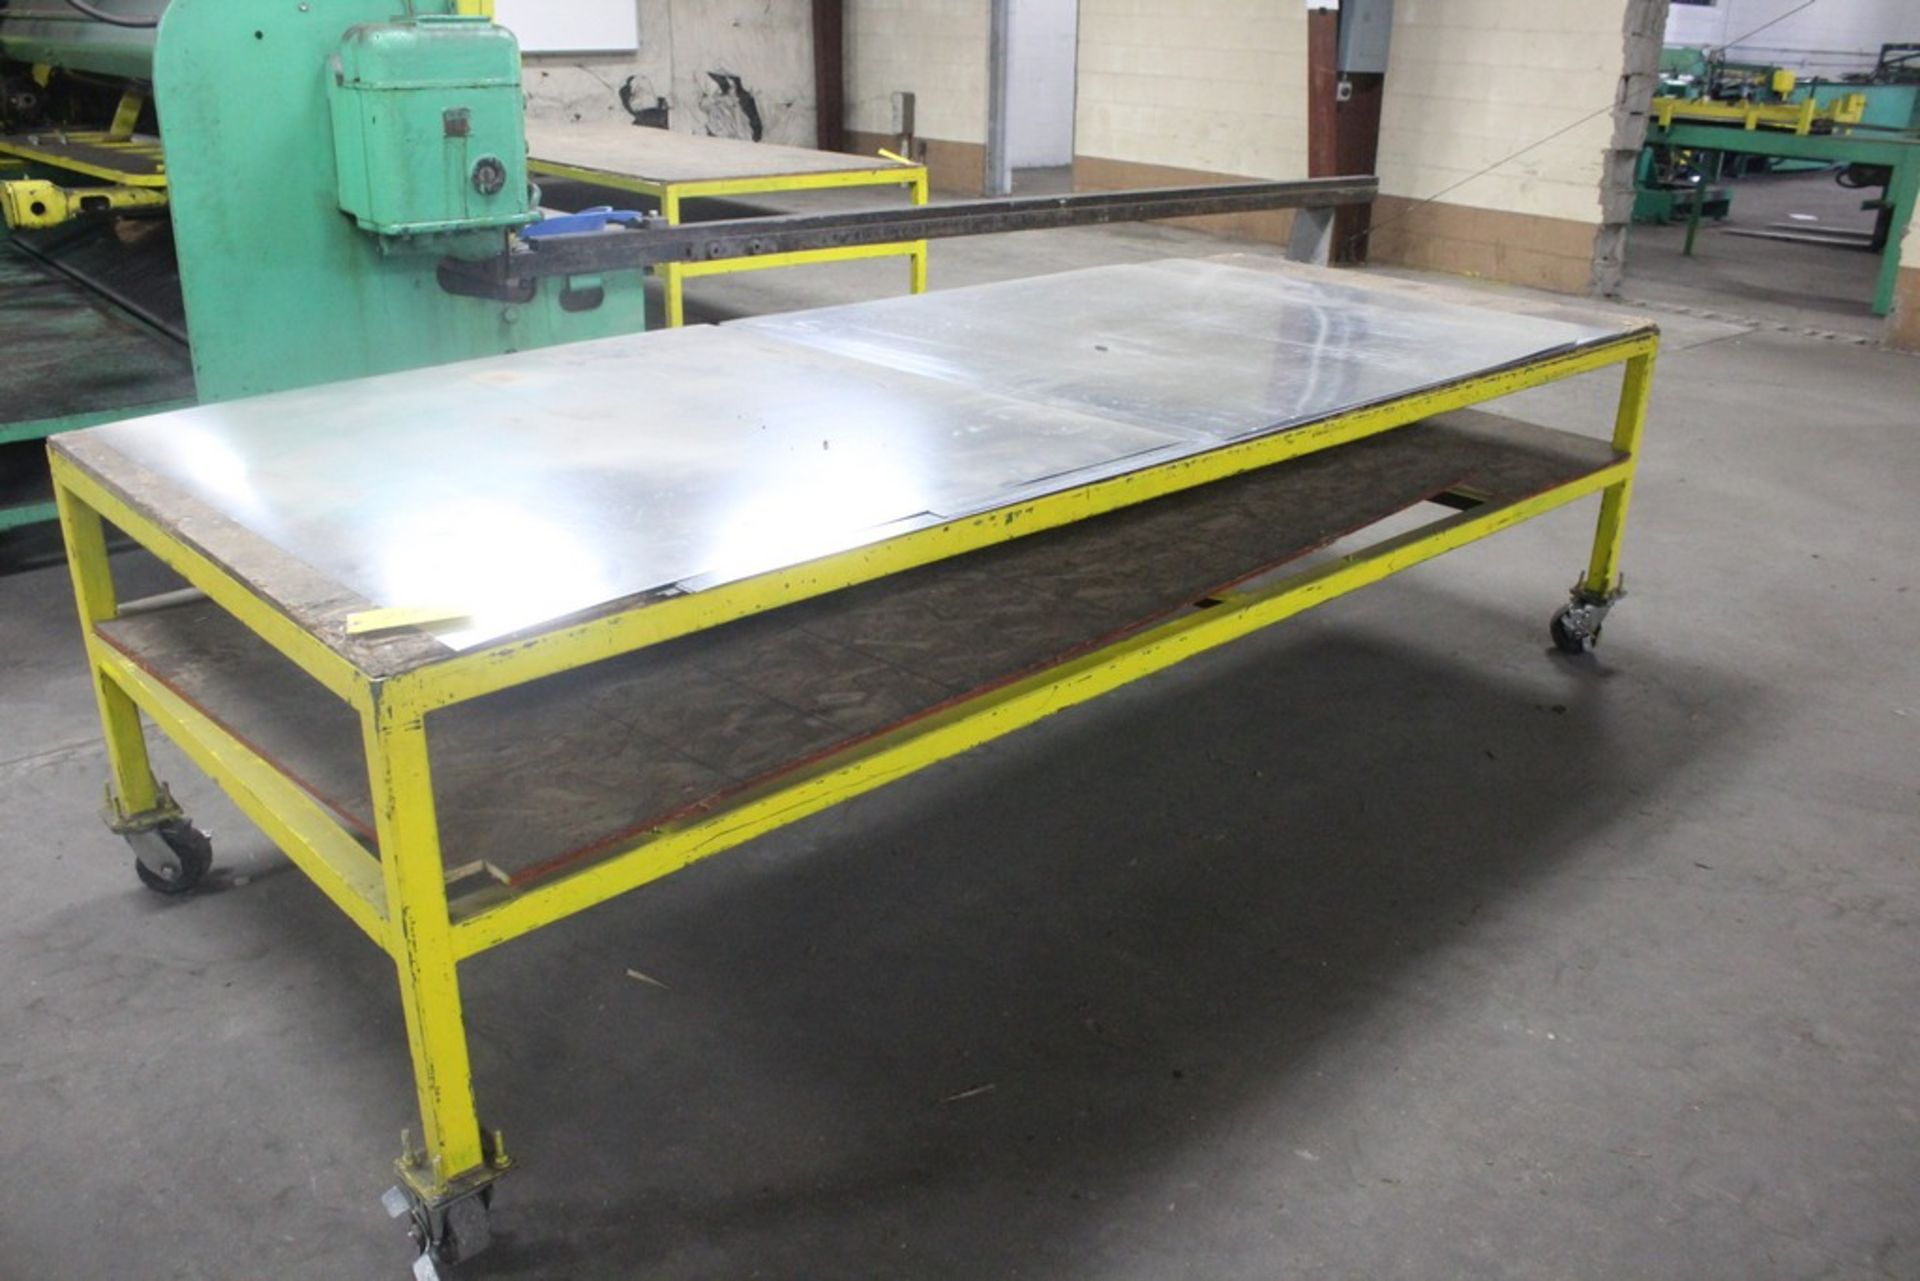 "Lot 21B - 48"" x 120"" x 33"" H Heavy Duty Work Table Mounted on Heavy Duty Casters"